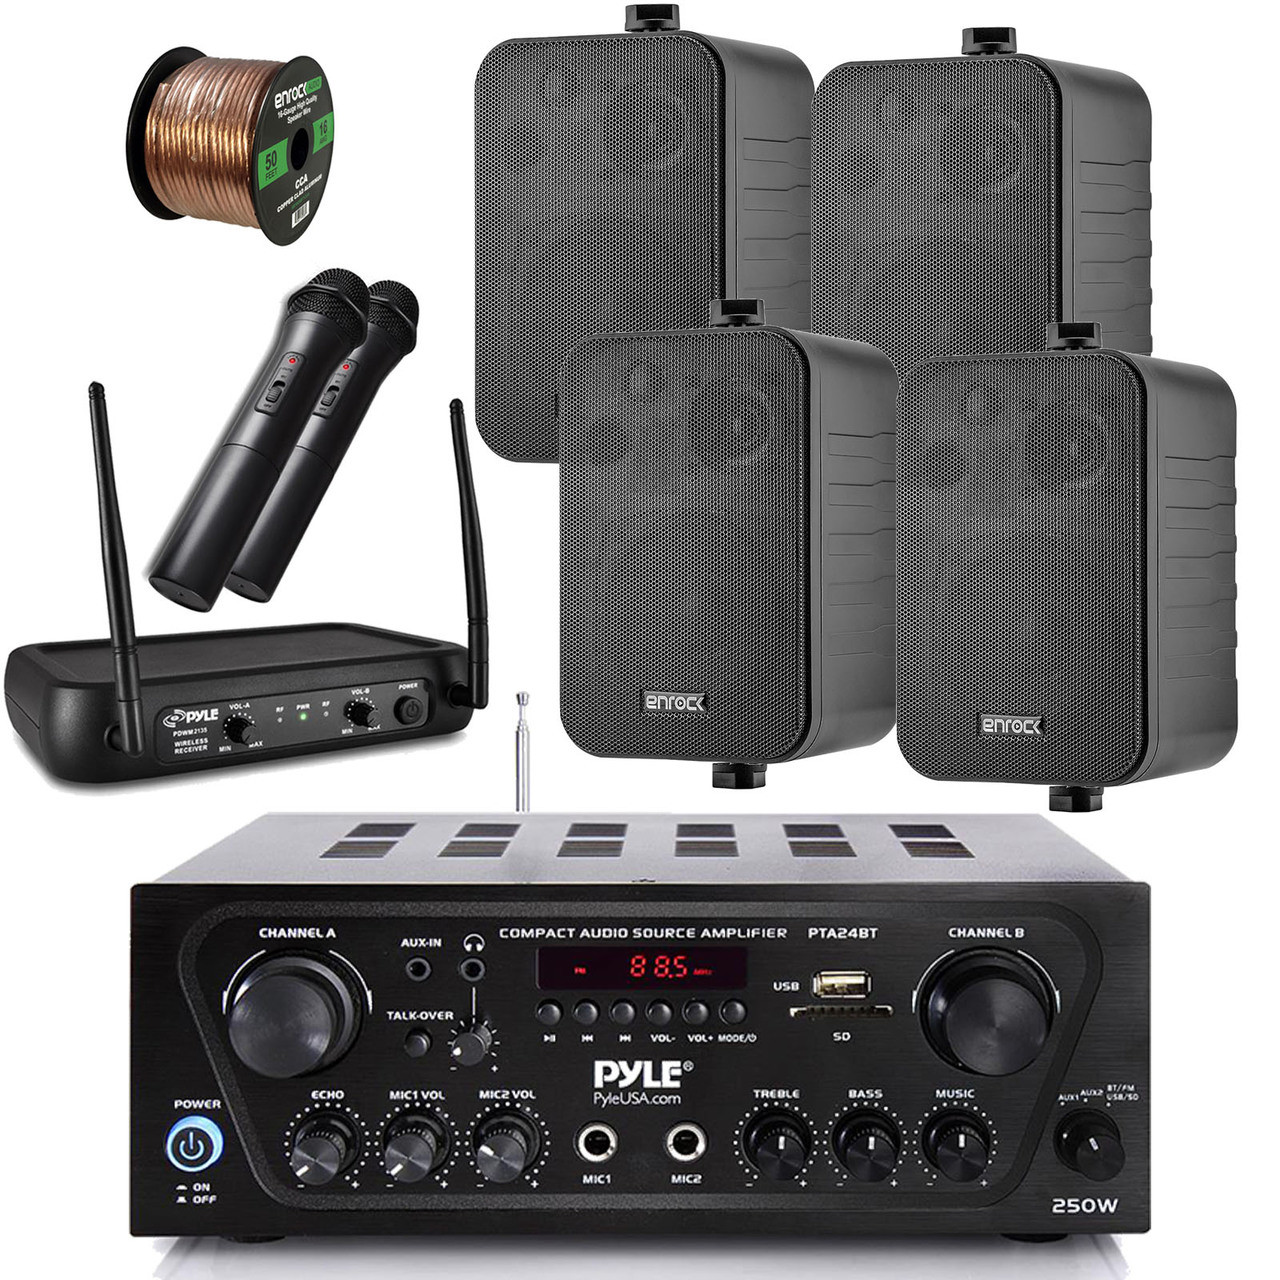 Pyle Wireless Bluetooth Stereo Receiver Amplifier, Dual Channel VHF  Wireless Microphone System, 4X Enrock EKMR408B 4